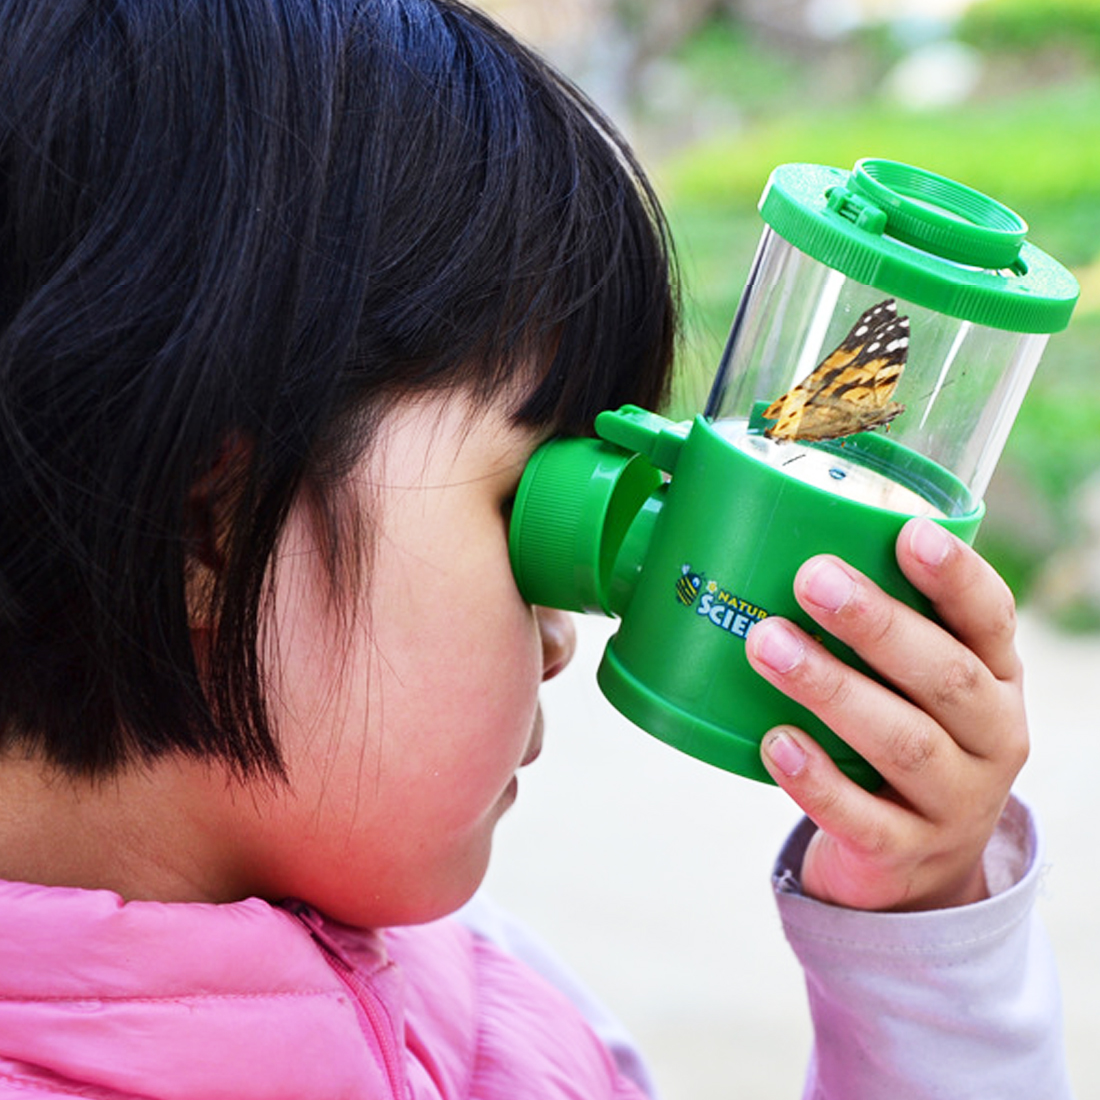 Bug Viewer Insect Magnifier Collecting Kit Children Observer Biology Kit Learning Early Development Education Children random c